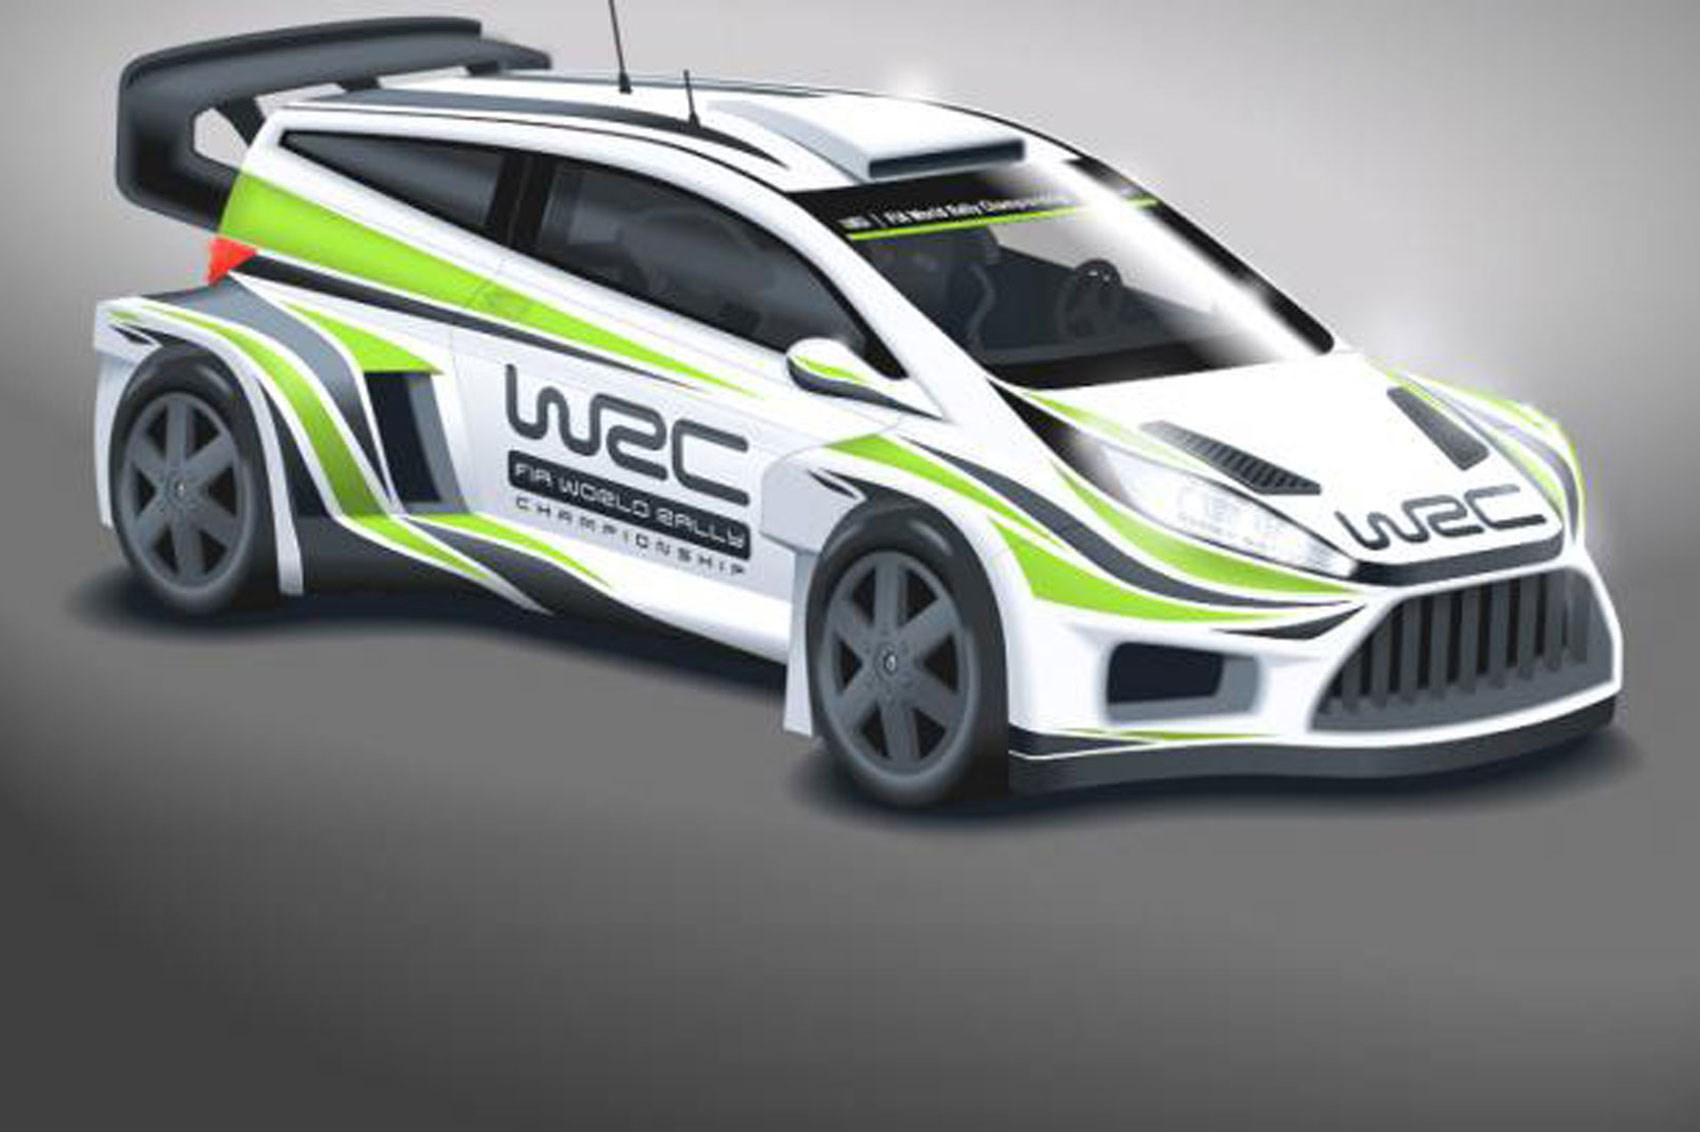 Ultrablogus  Unusual Wild New Look For Wrc Cars In  By Car Magazine With Likable Wrc Cars Will Get Wider Bodies Bigger Wings And More Power For  With Archaic  Buick Enclave Interior Also Mahindra Scorpio Interior Pictures In Addition Cinnamon Interior Bmw And  Ss Interior As Well As  Dodge Journey Interior Additionally Jeep Interior Replacement Parts From Carmagazinecouk With Ultrablogus  Likable Wild New Look For Wrc Cars In  By Car Magazine With Archaic Wrc Cars Will Get Wider Bodies Bigger Wings And More Power For  And Unusual  Buick Enclave Interior Also Mahindra Scorpio Interior Pictures In Addition Cinnamon Interior Bmw From Carmagazinecouk